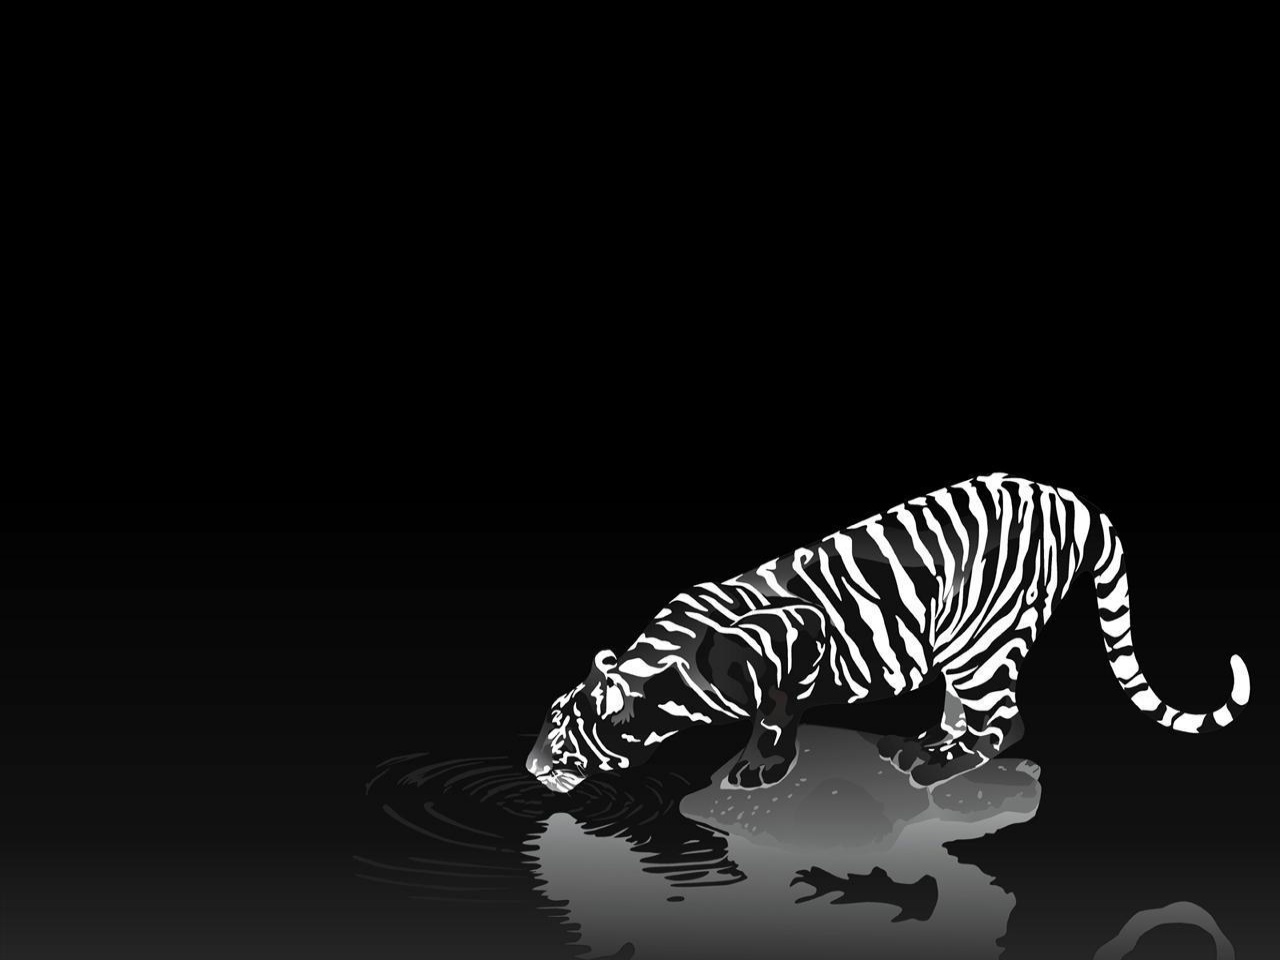 Wallpaper wolf wallpaper hd pack for Black and white wallpaper 3d